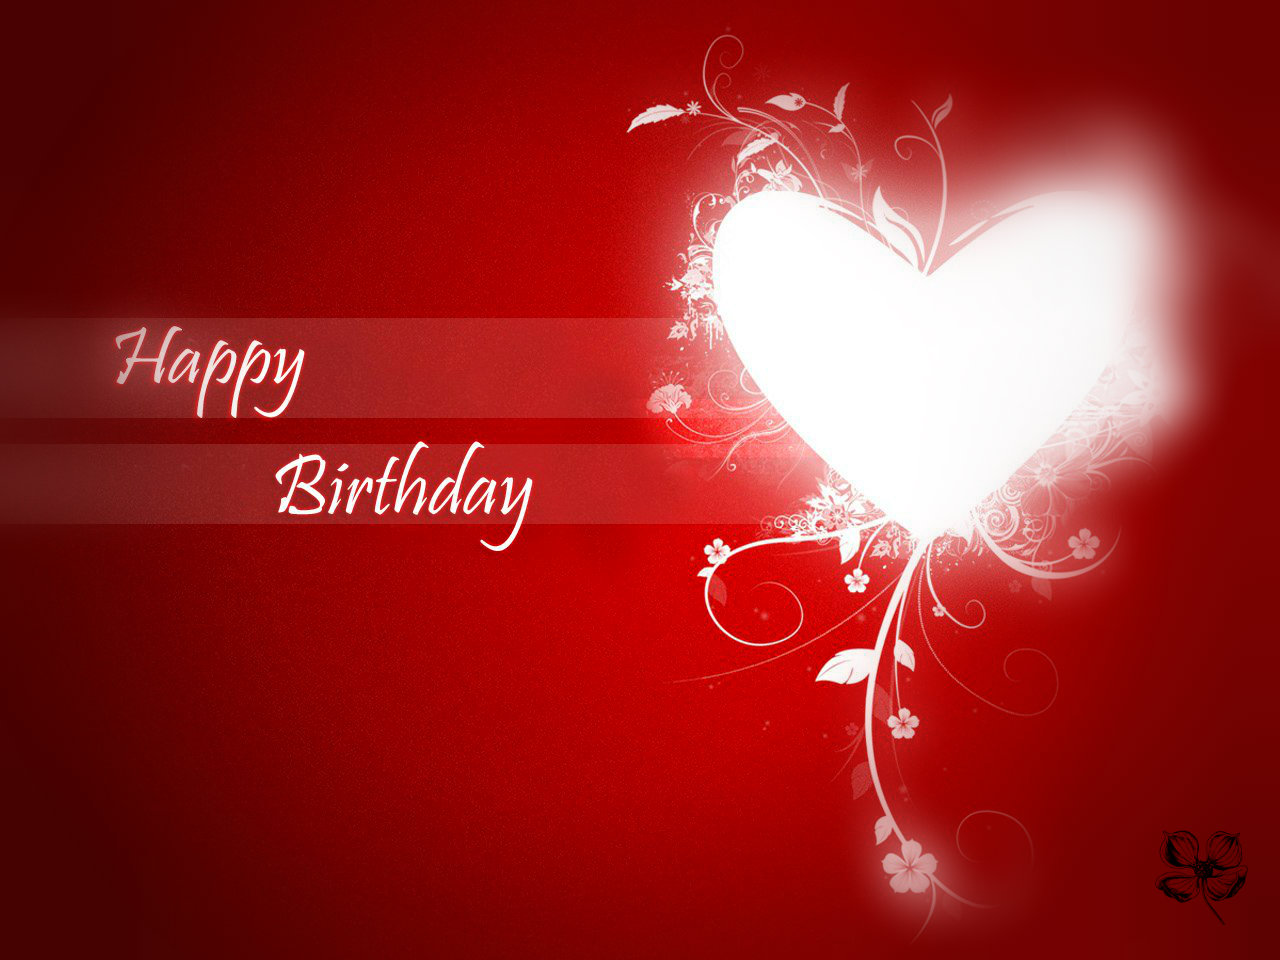 happy birthday images wallpapers ; Happy-Birthday-wallpaper-for-love-111